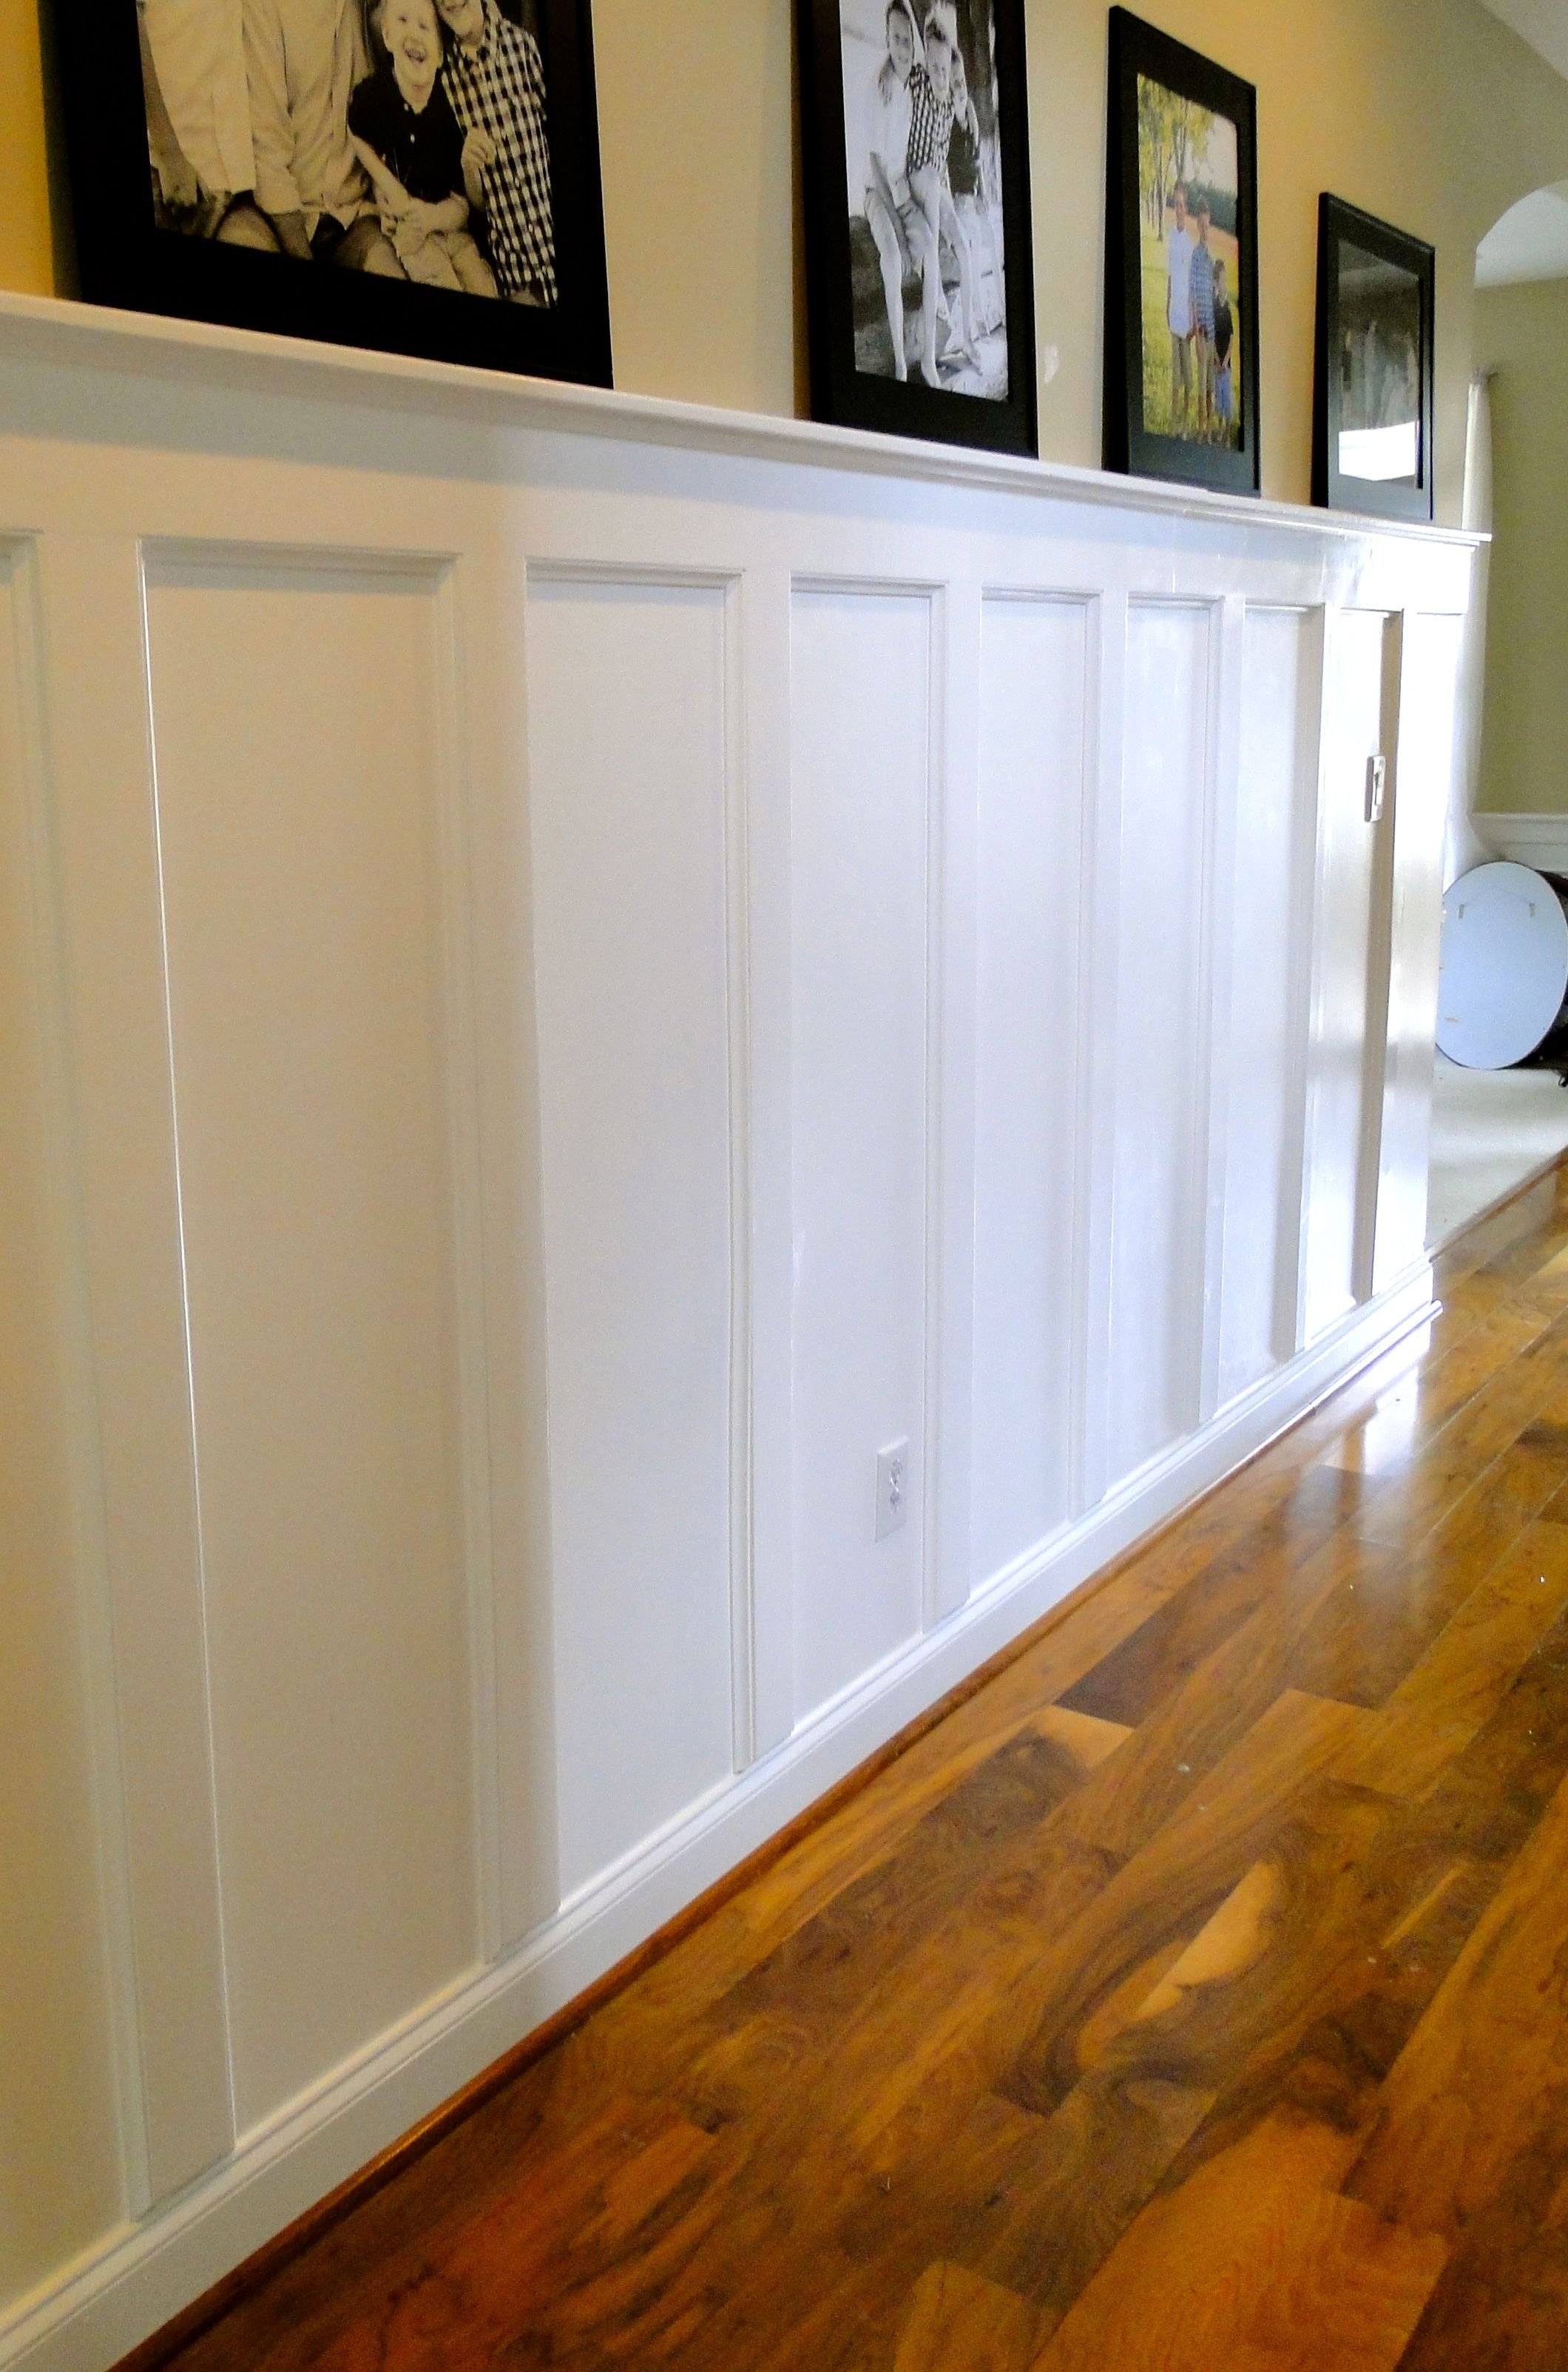 10 Grand Bedroom Wainscoting Entryway Ideas Wainscoting Wainscoting Height Wainscoting Styles